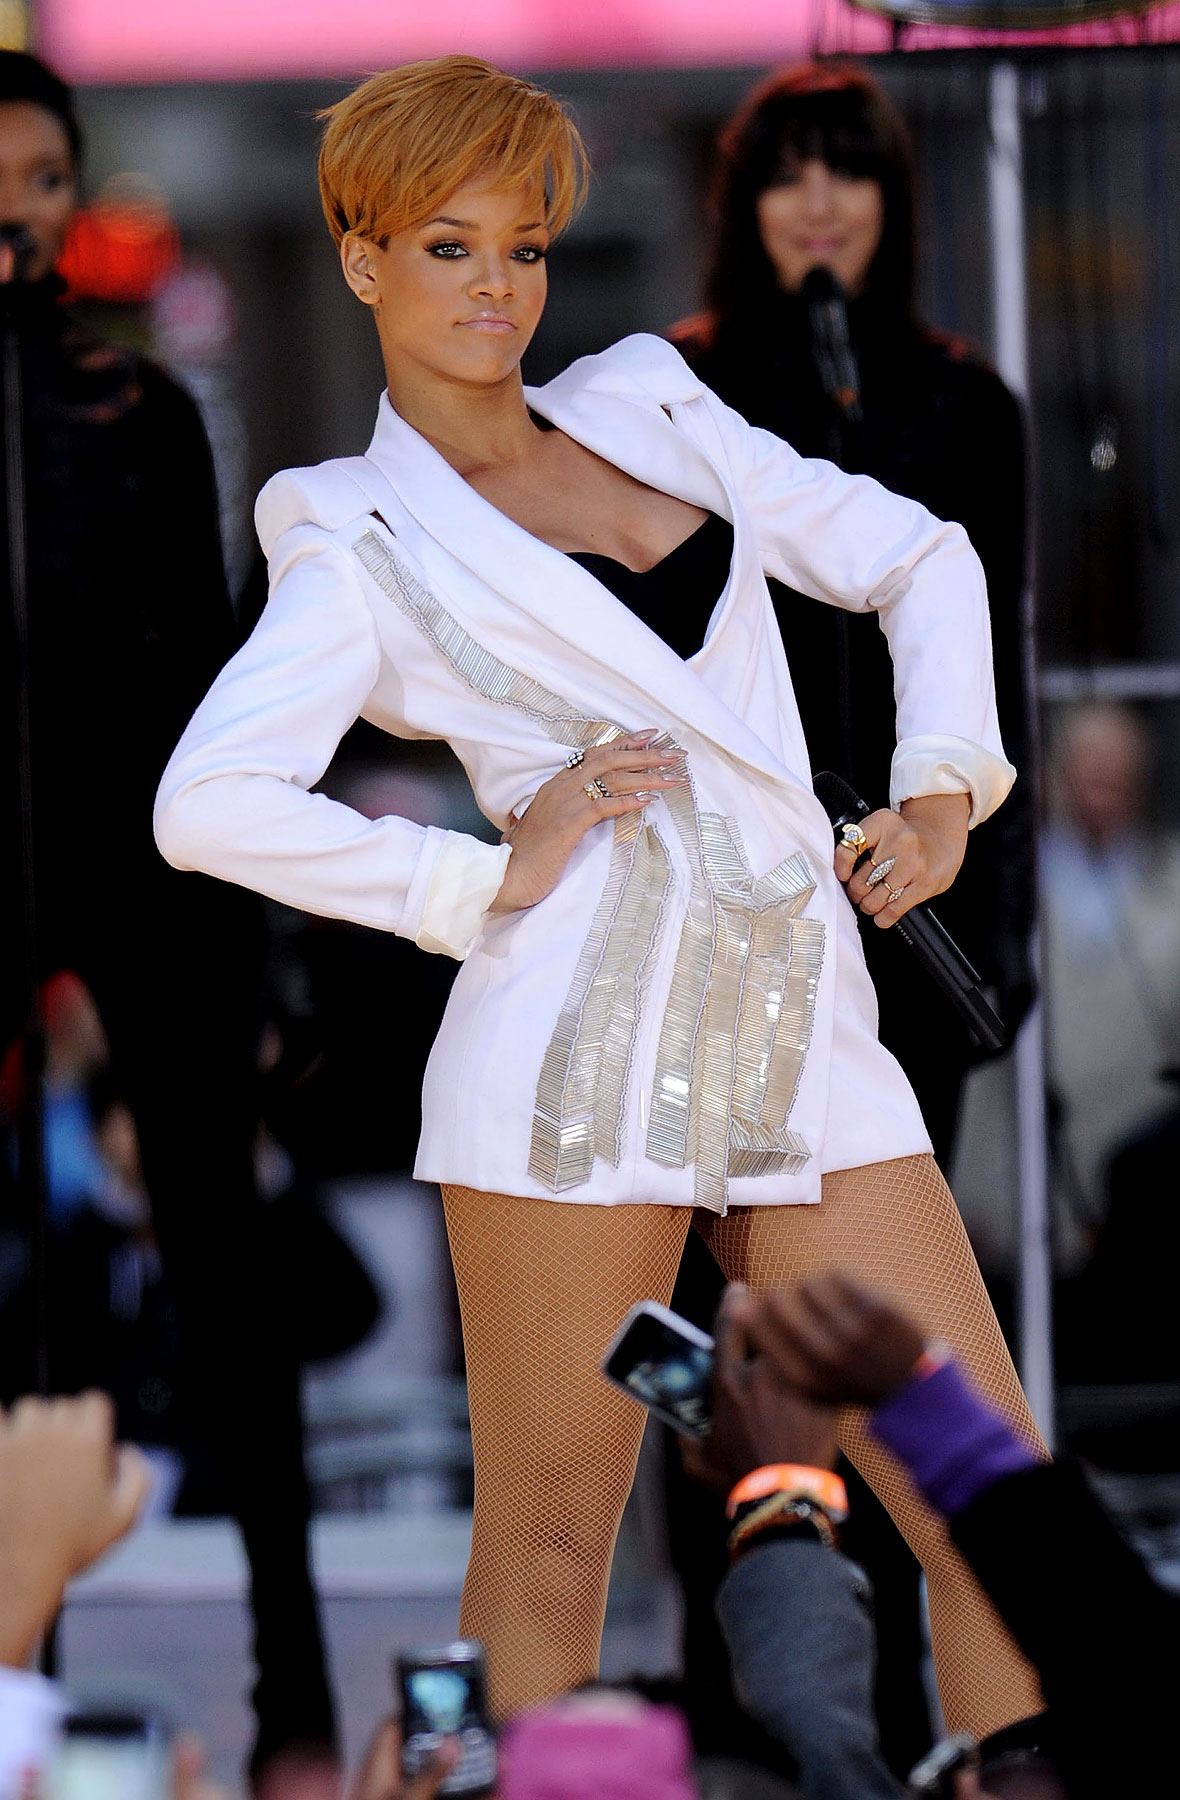 PHOTO GALLERY: Rihanna Performs Without Pants